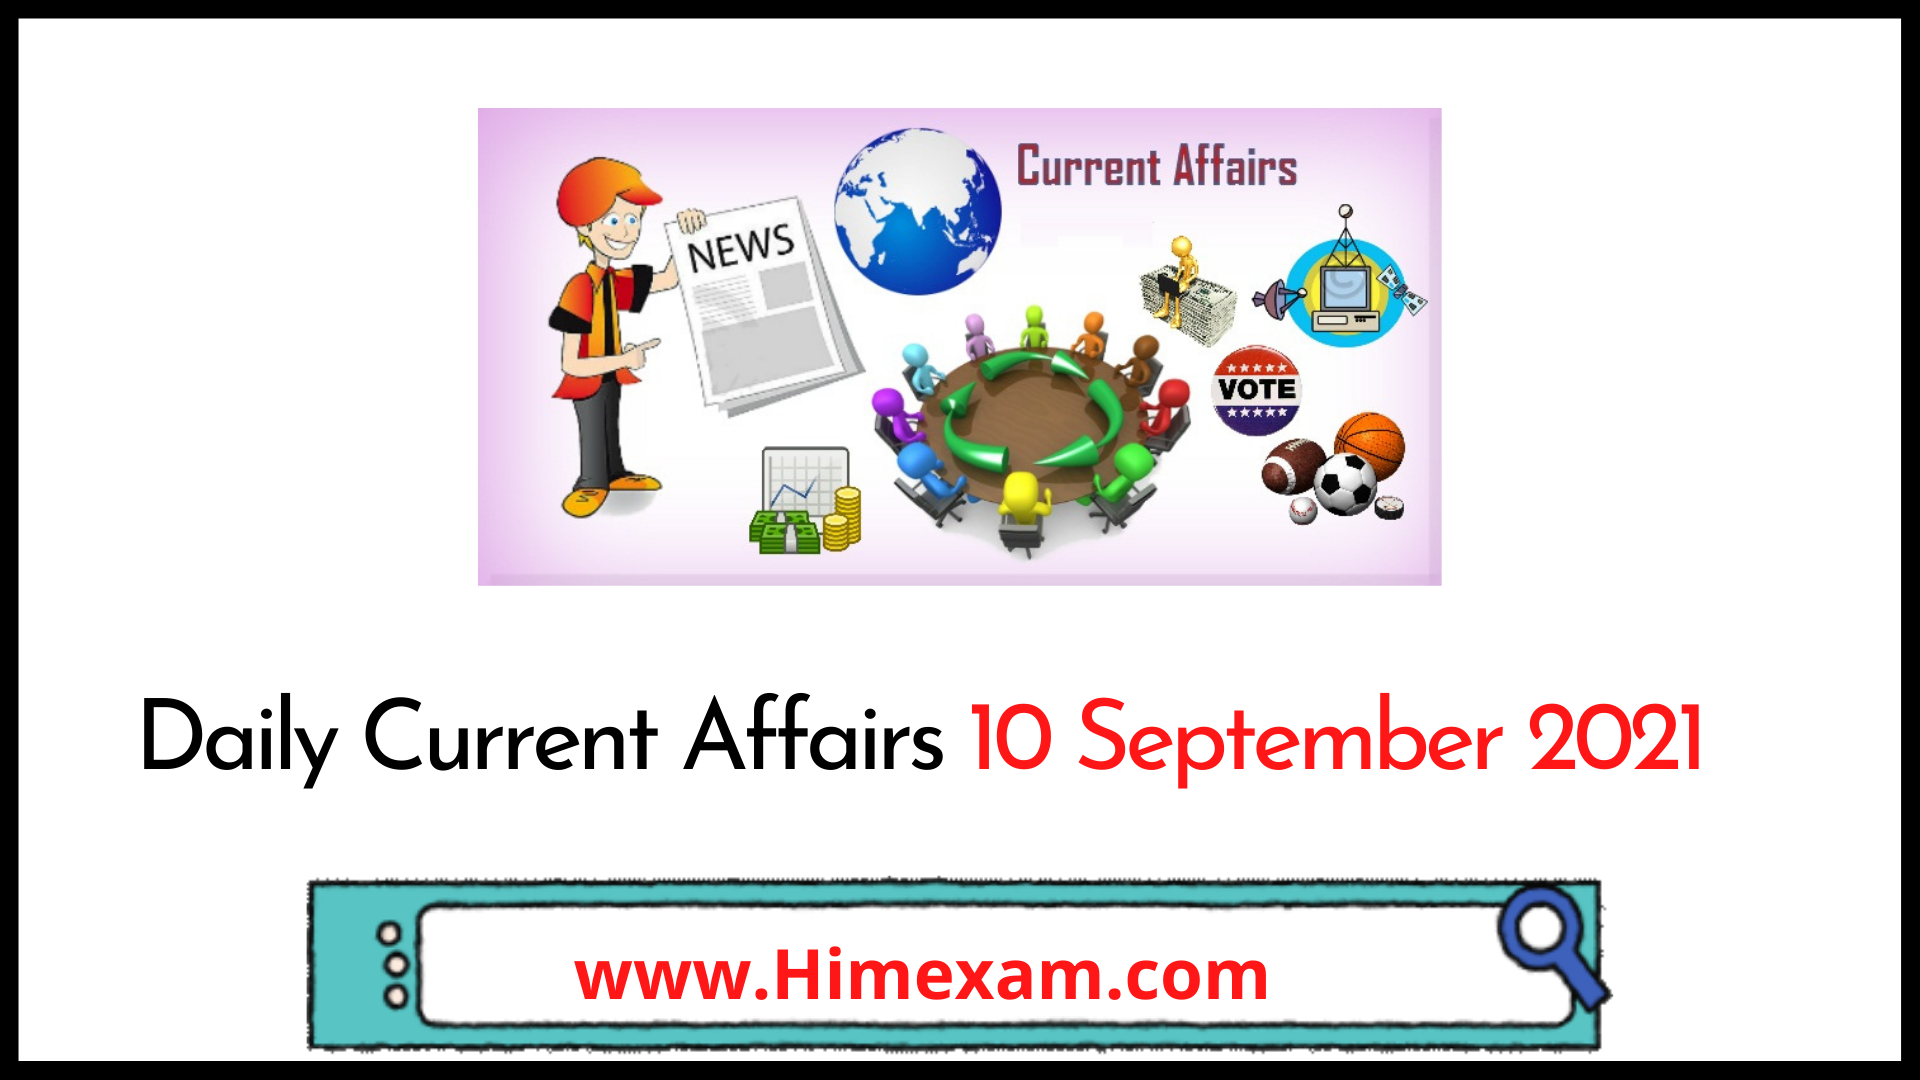 Daily Current Affairs 10 September 2021